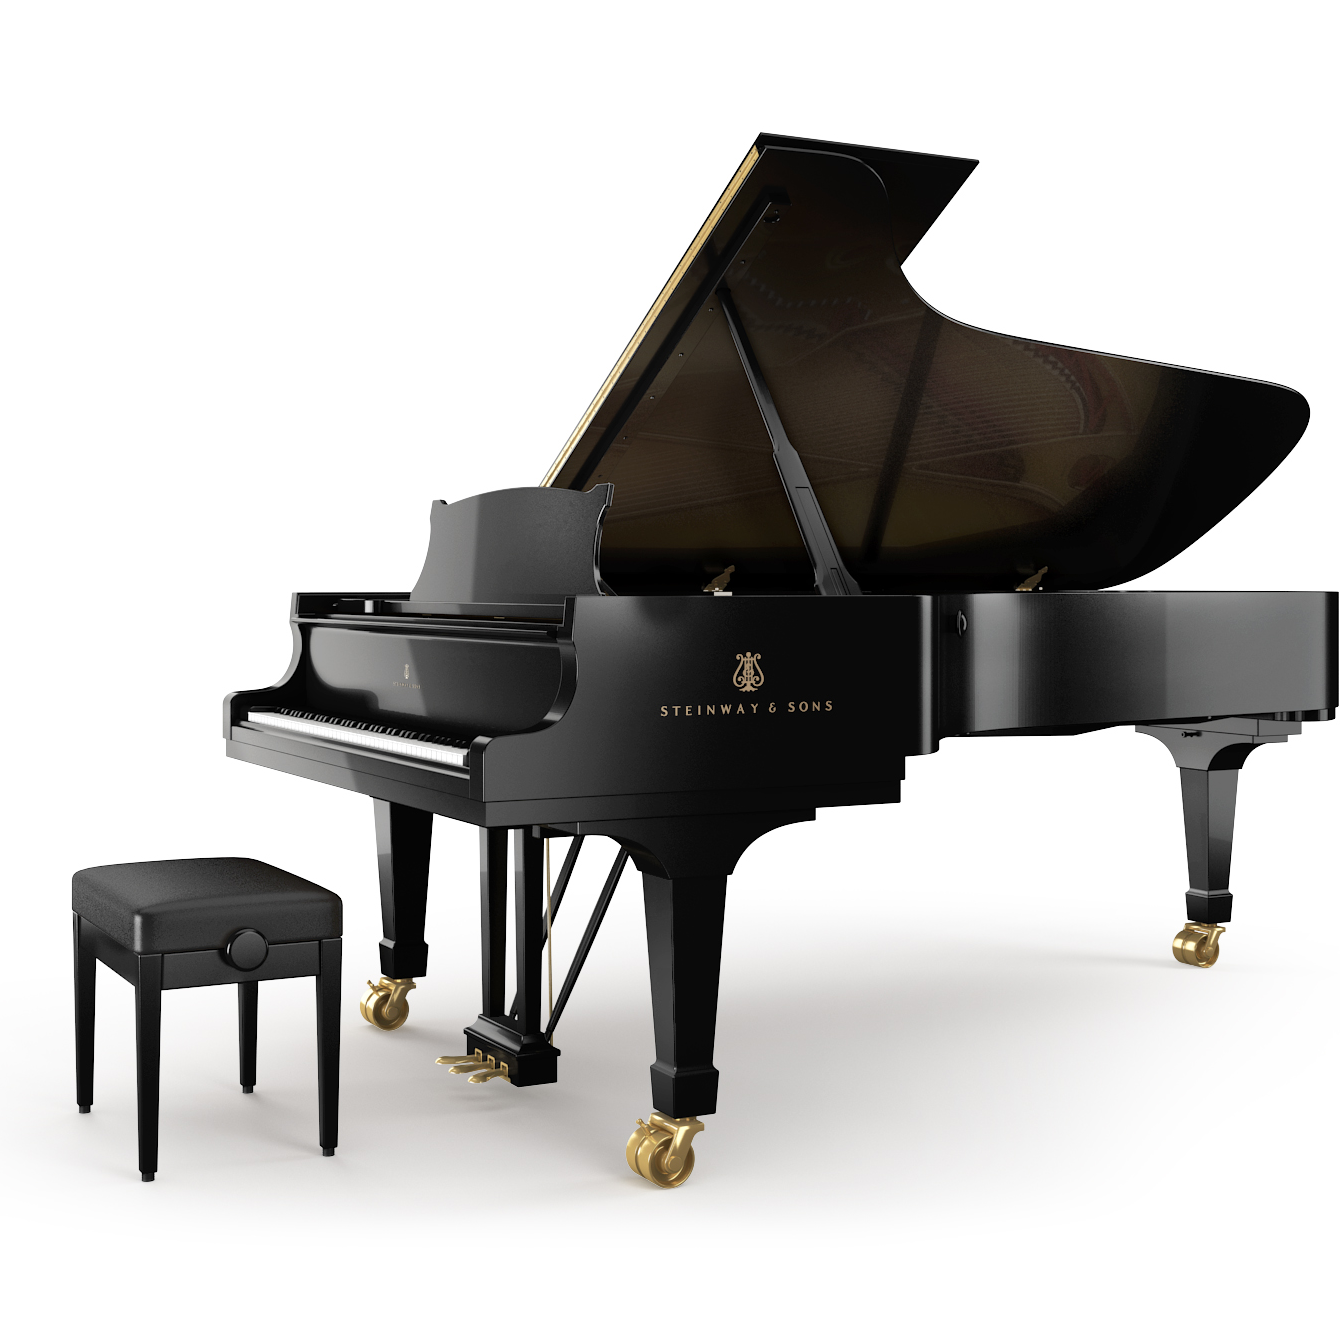 steinway model D grand piano